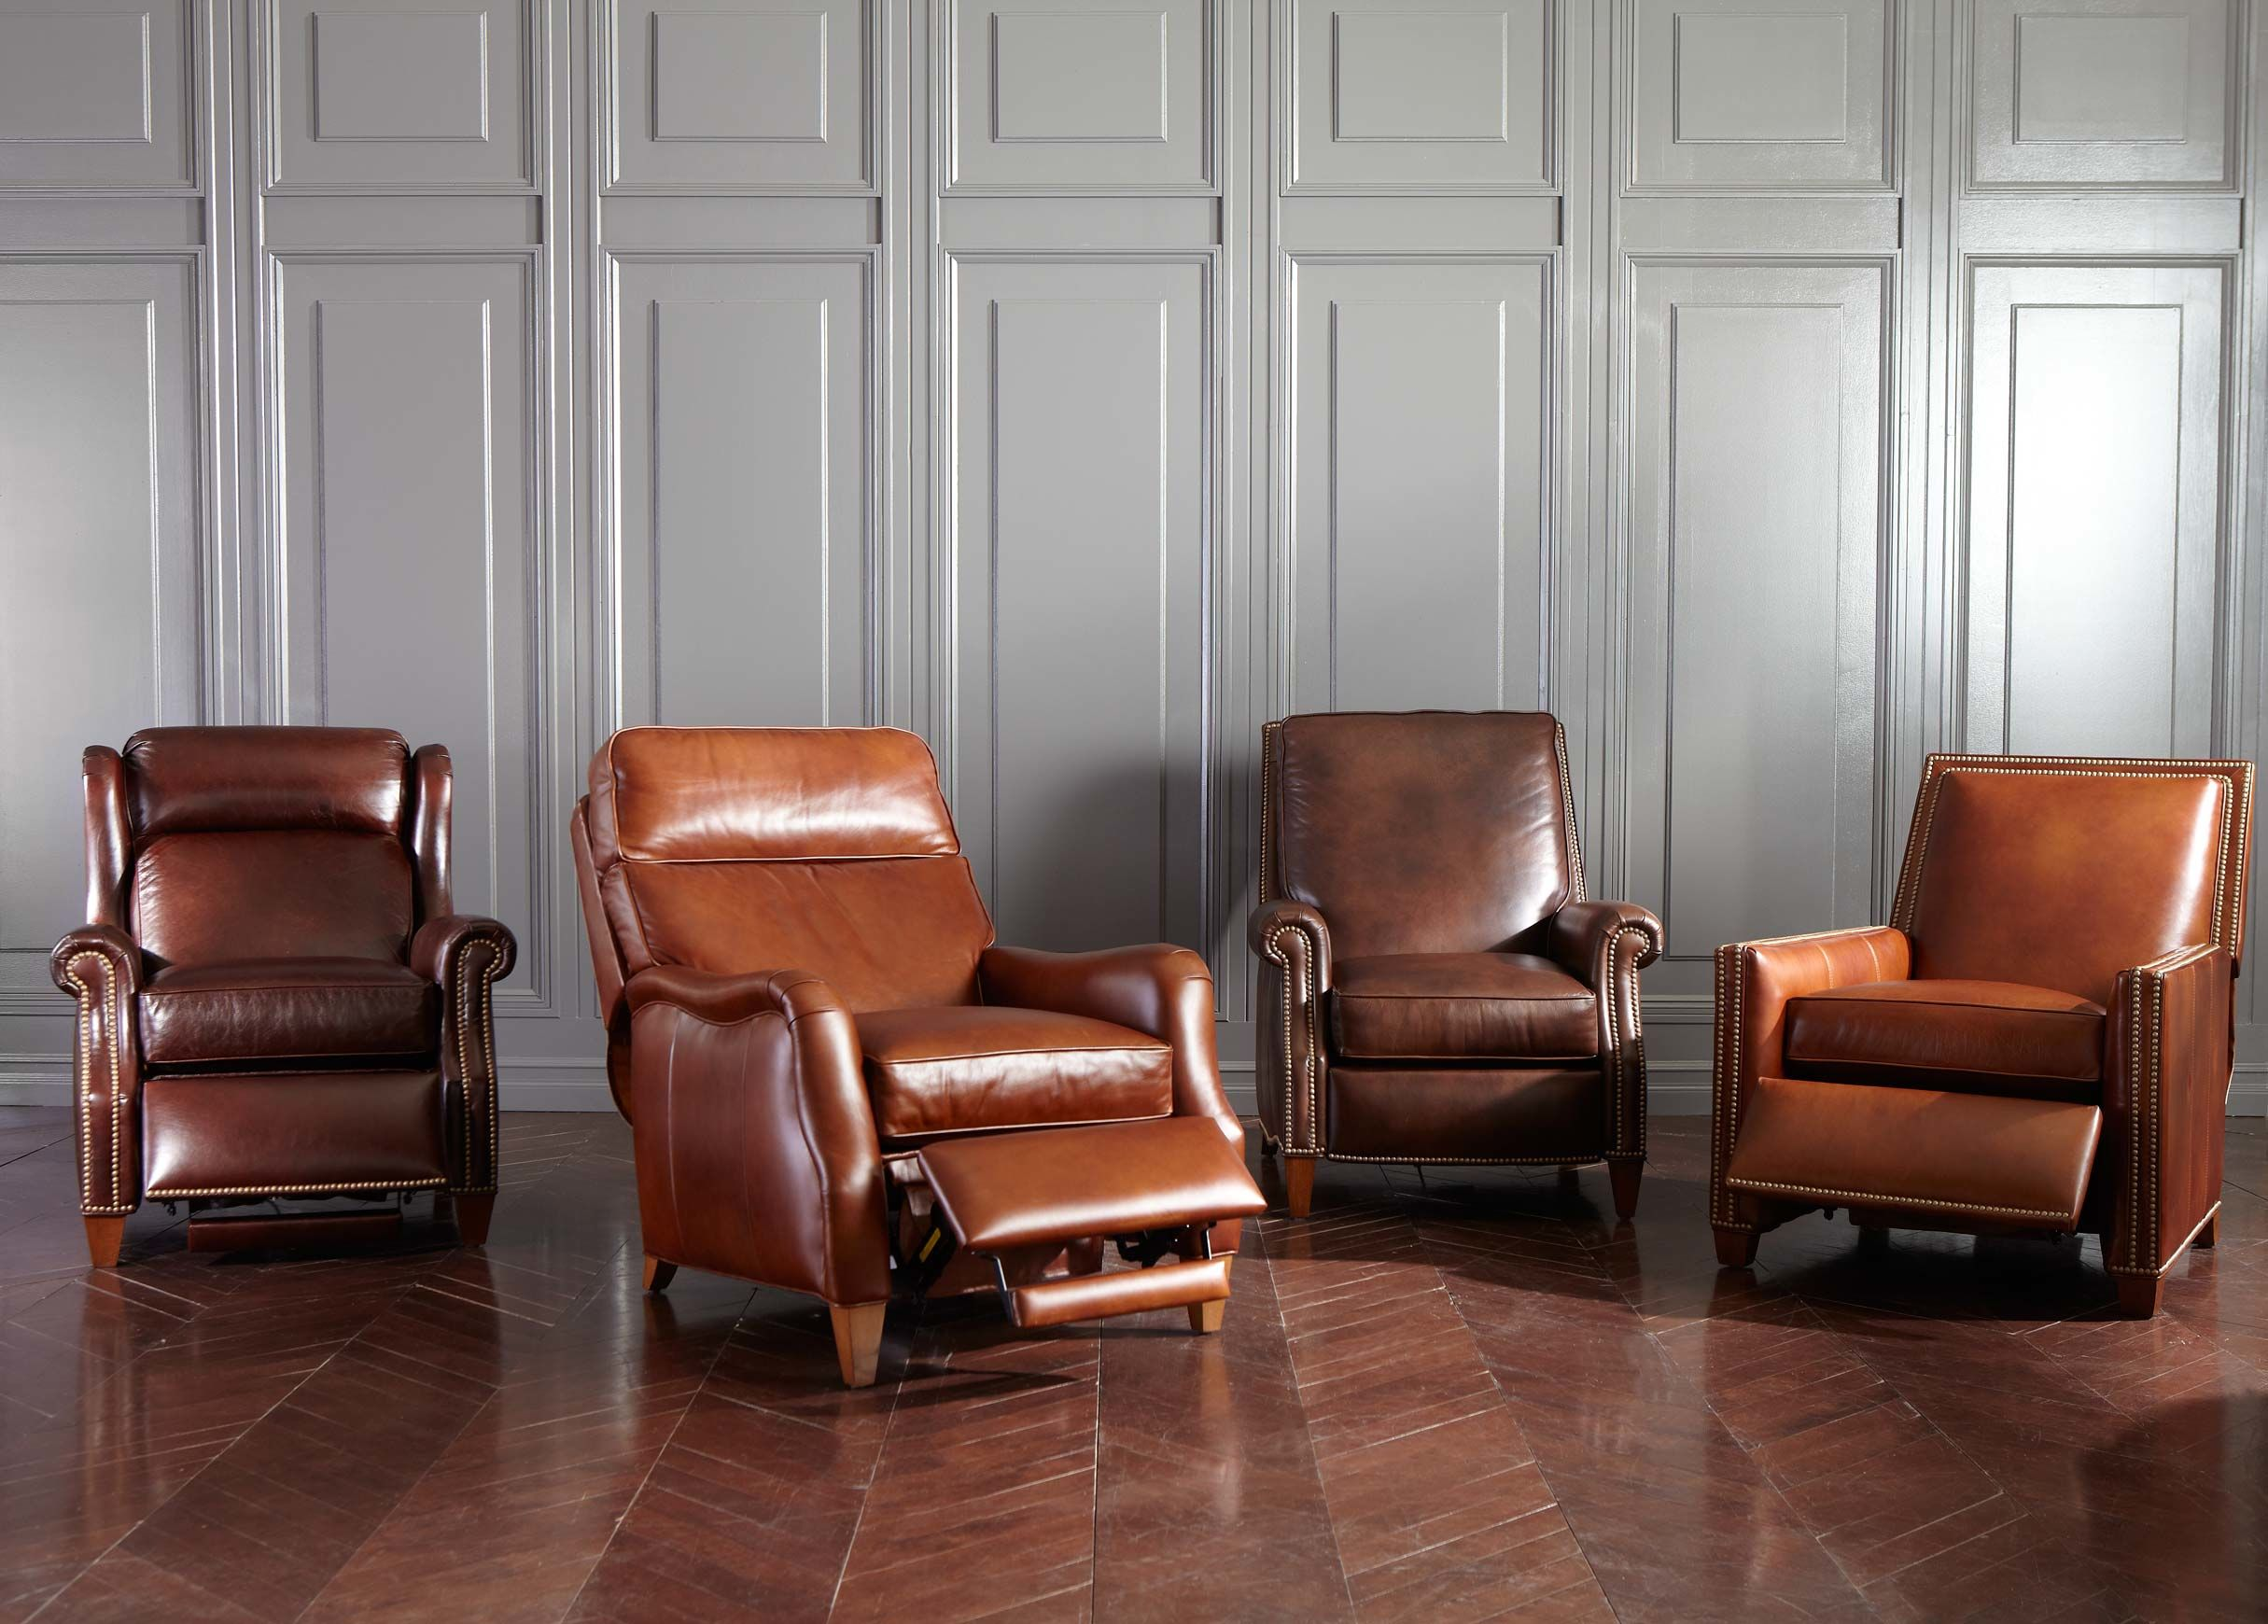 ethan allen leather furniture brown recliners for comfy home decor : ethan allen leather recliner chairs - islam-shia.org